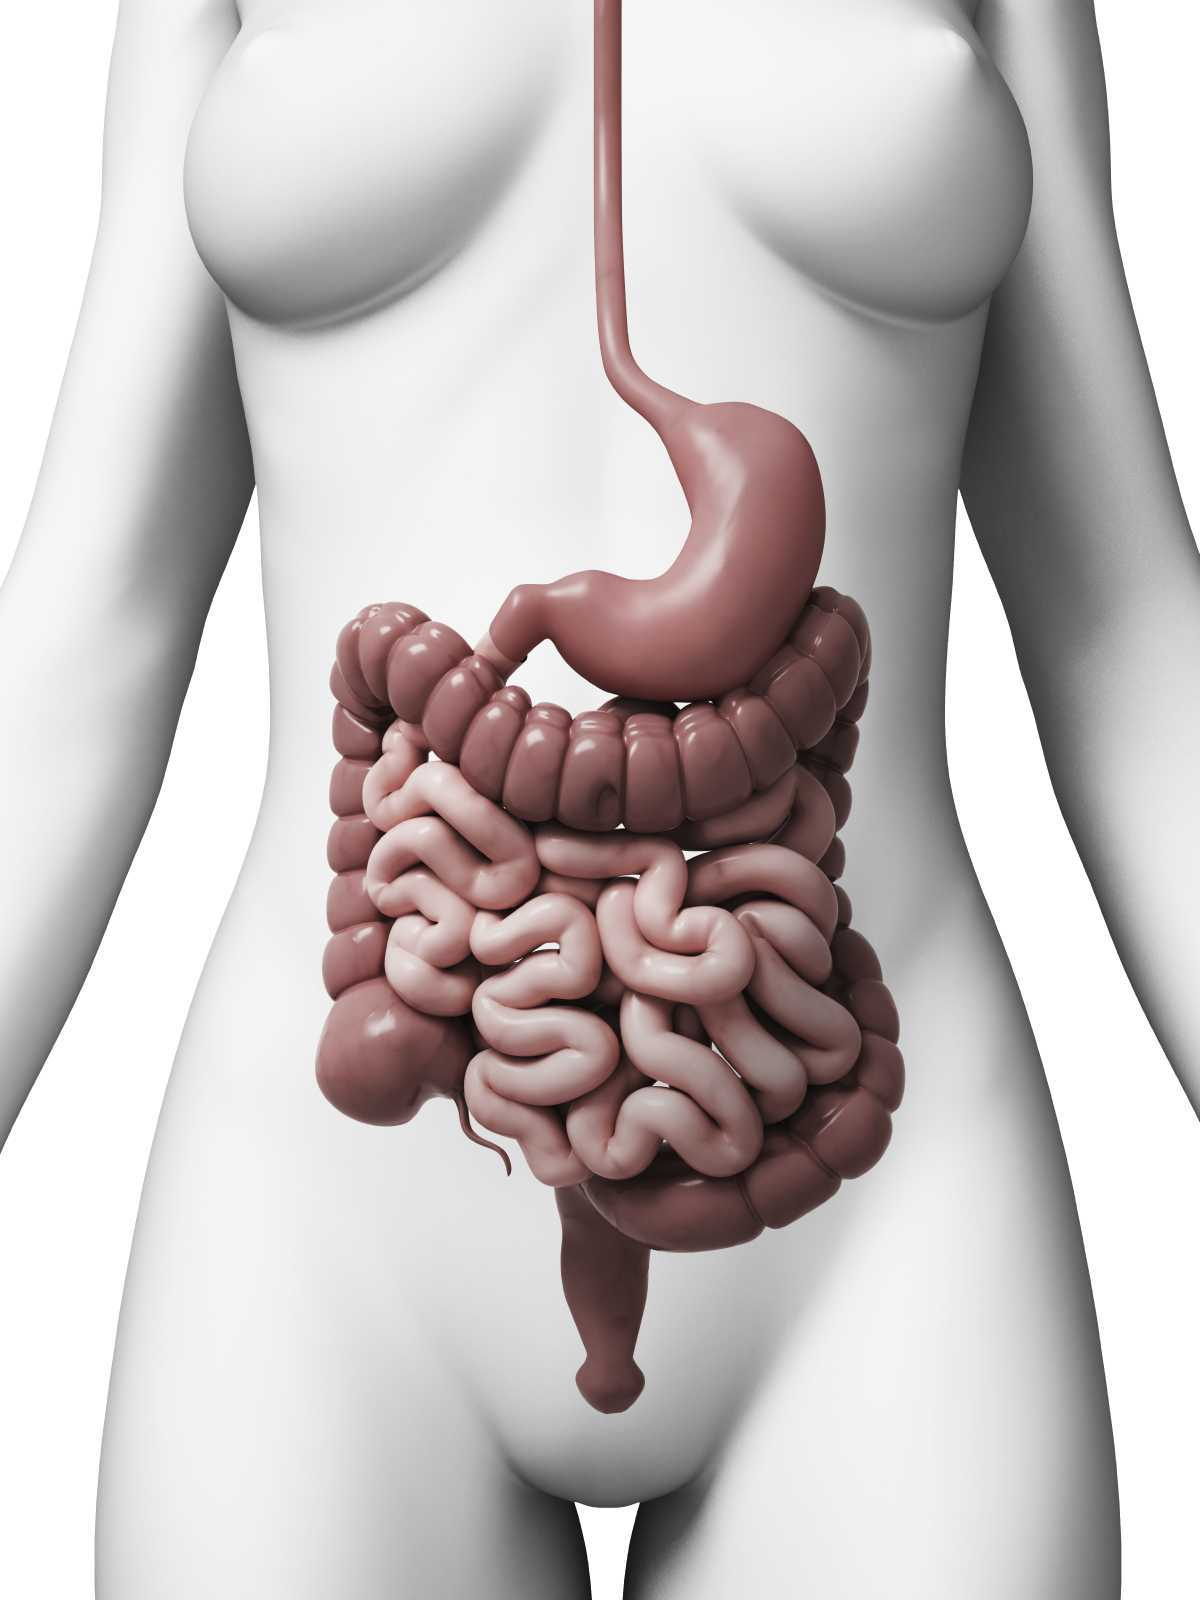 Dyssynergic Defecation: A Common Culprit of Chronic Constipation and Abdominal Pain